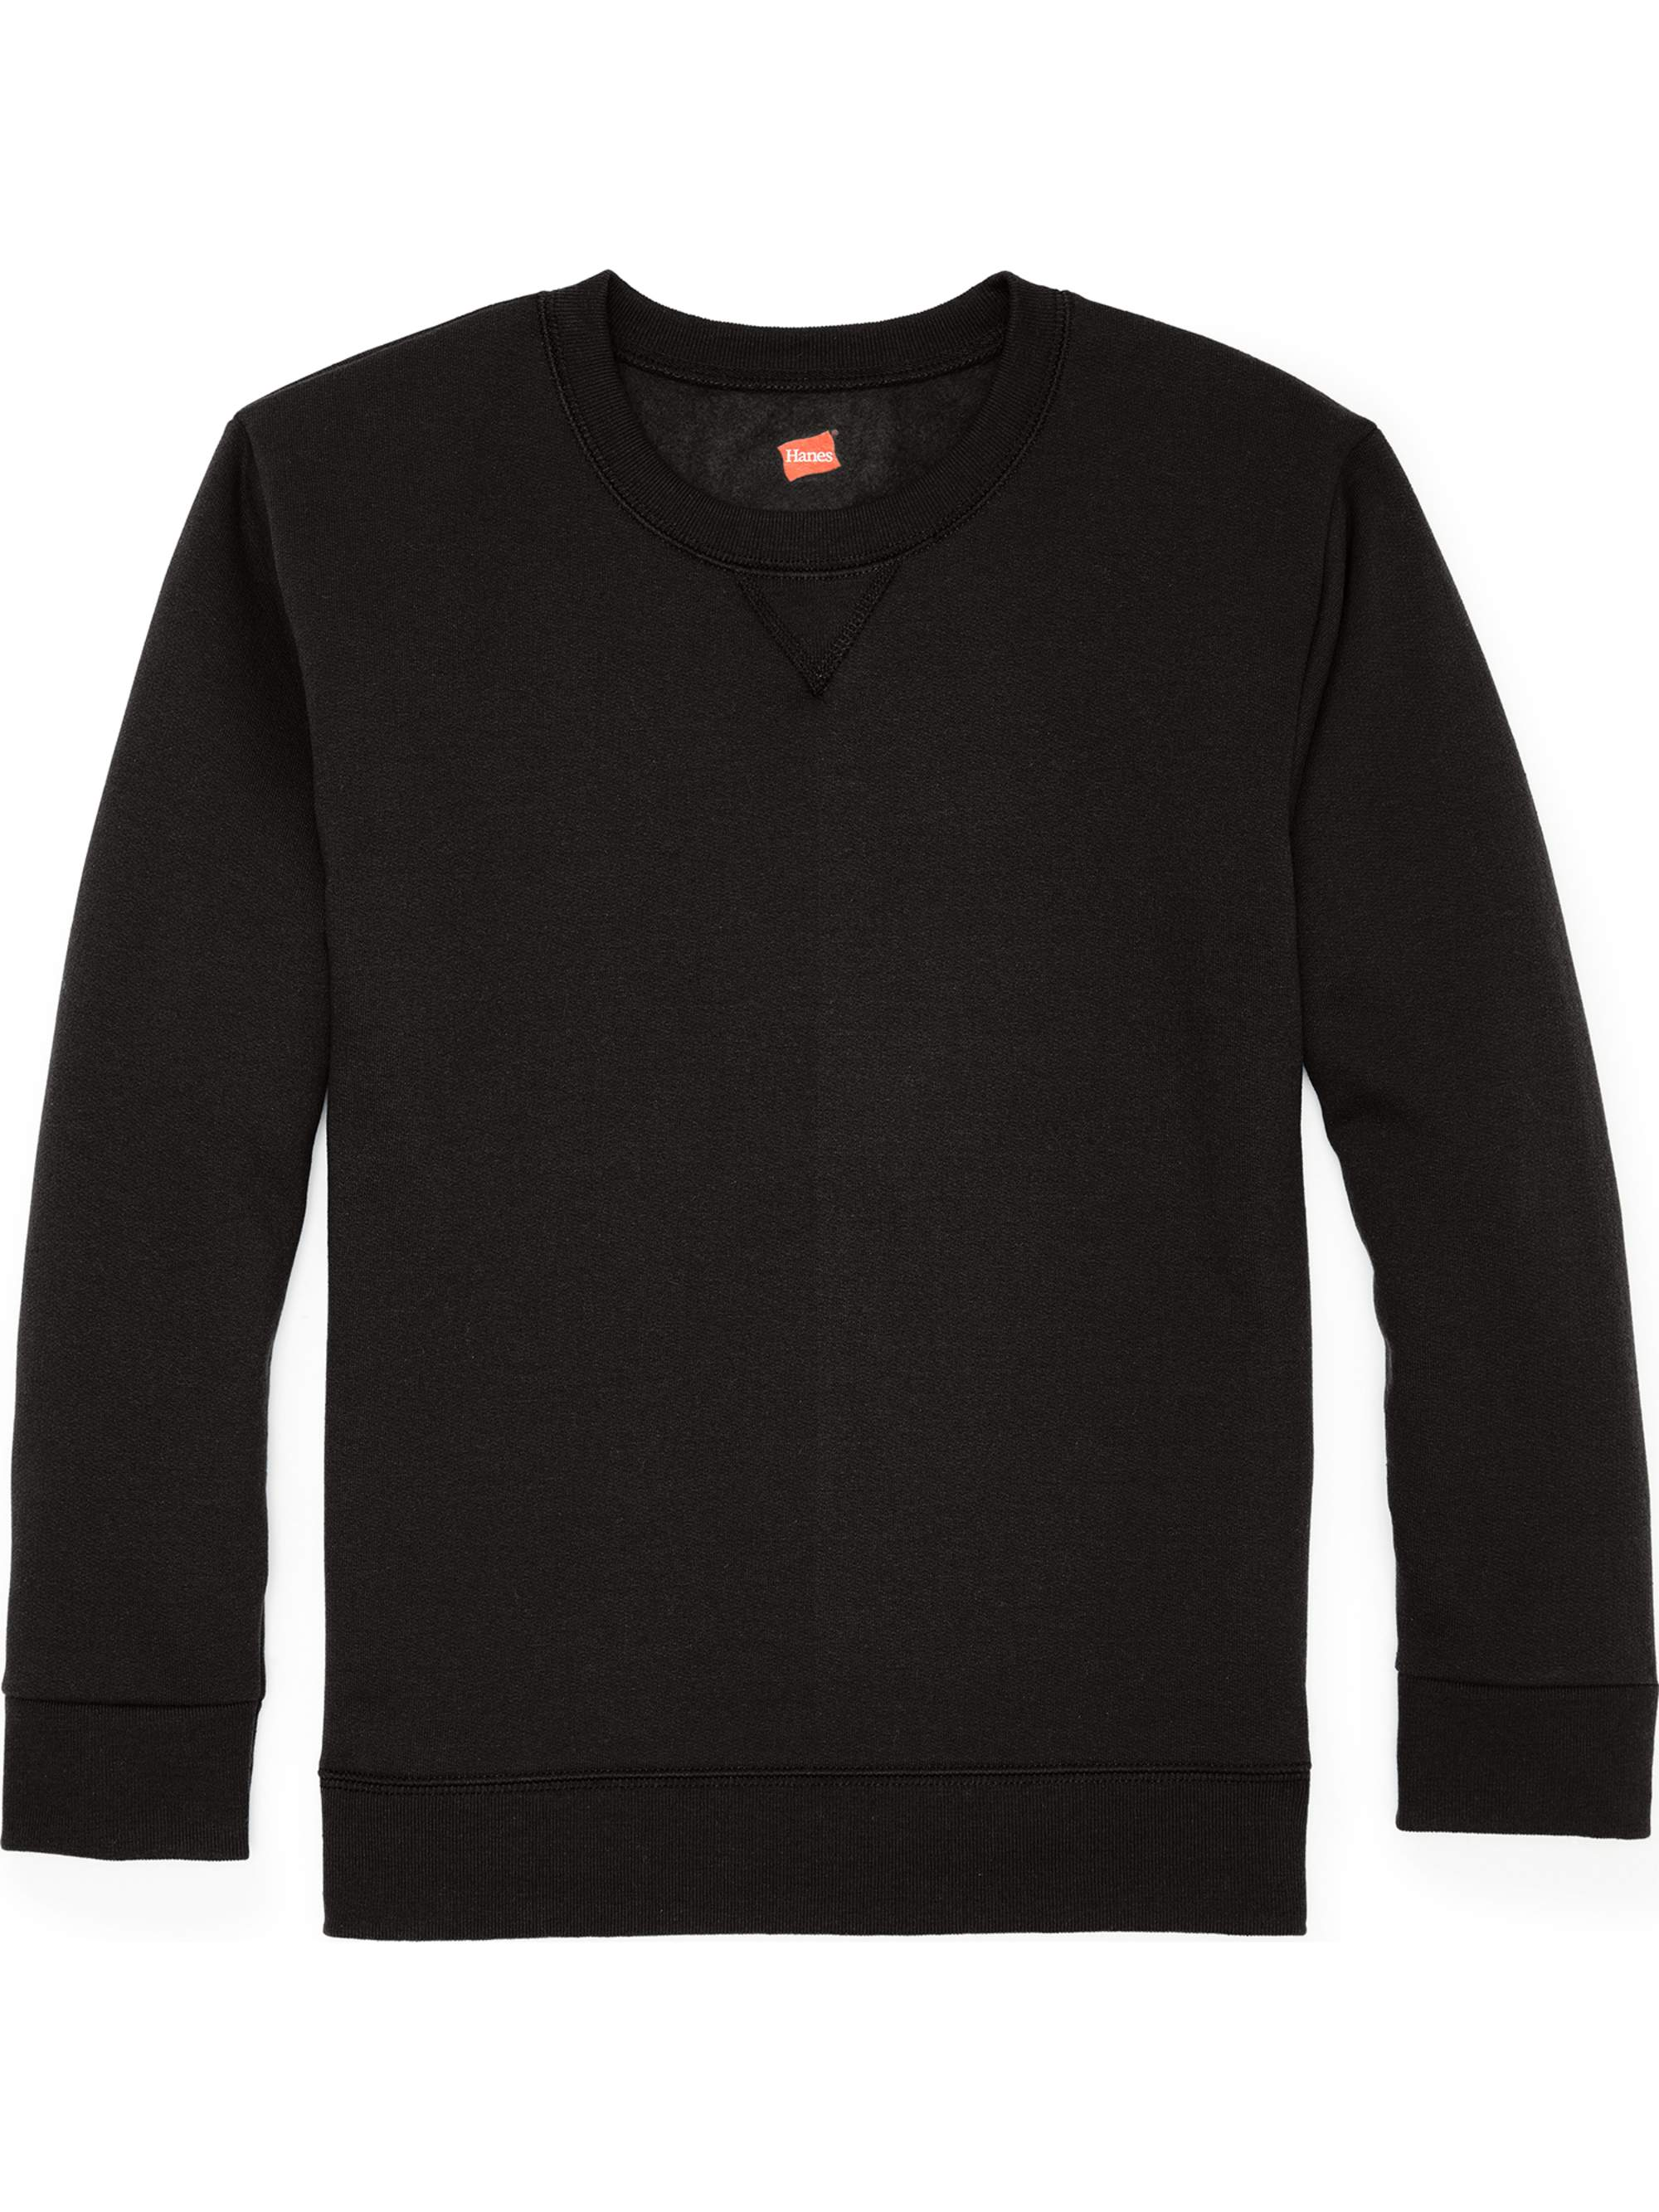 Solid Fleece V-notch Crew Neck Sweatshirt (Little Boys & Big Boys)